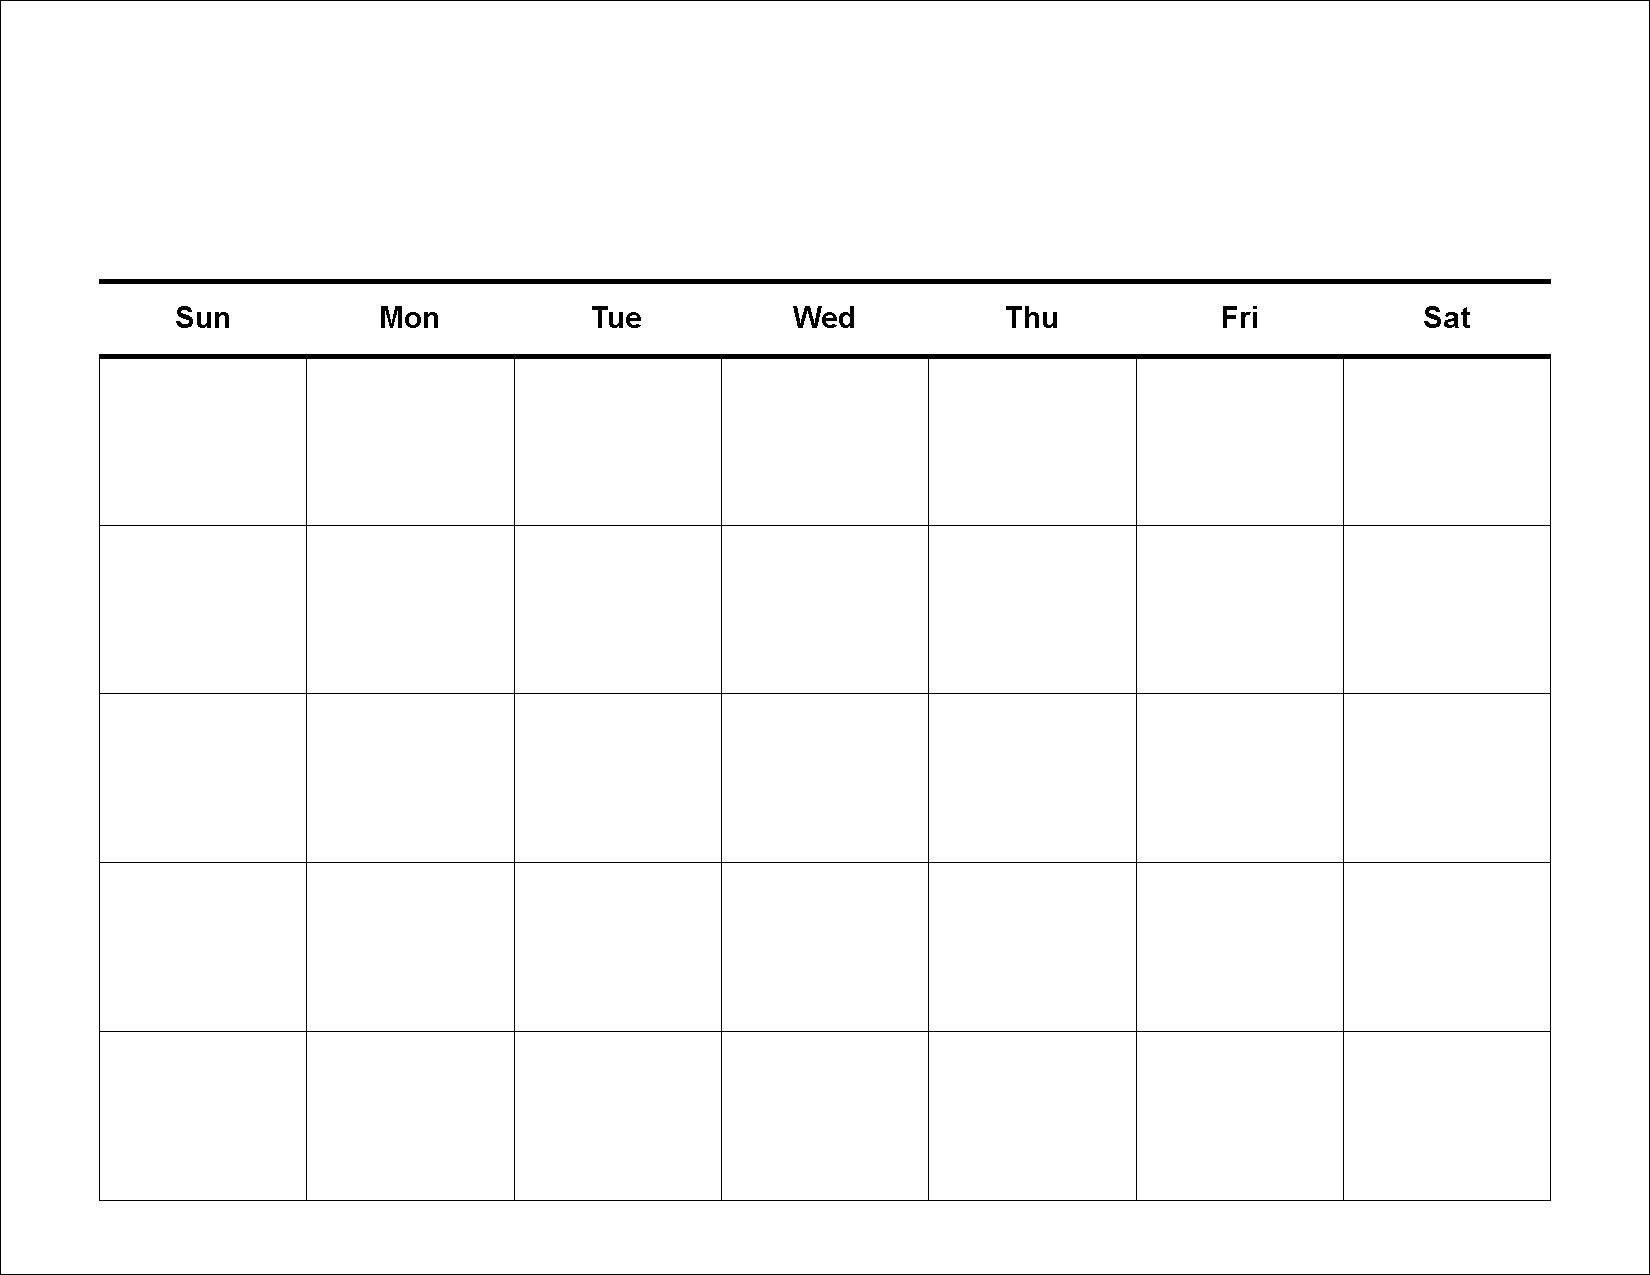 Printable 30 Day Blank Calendar In 2020 | Weekly Calendar intended for 30 Day Calendars Free Printable